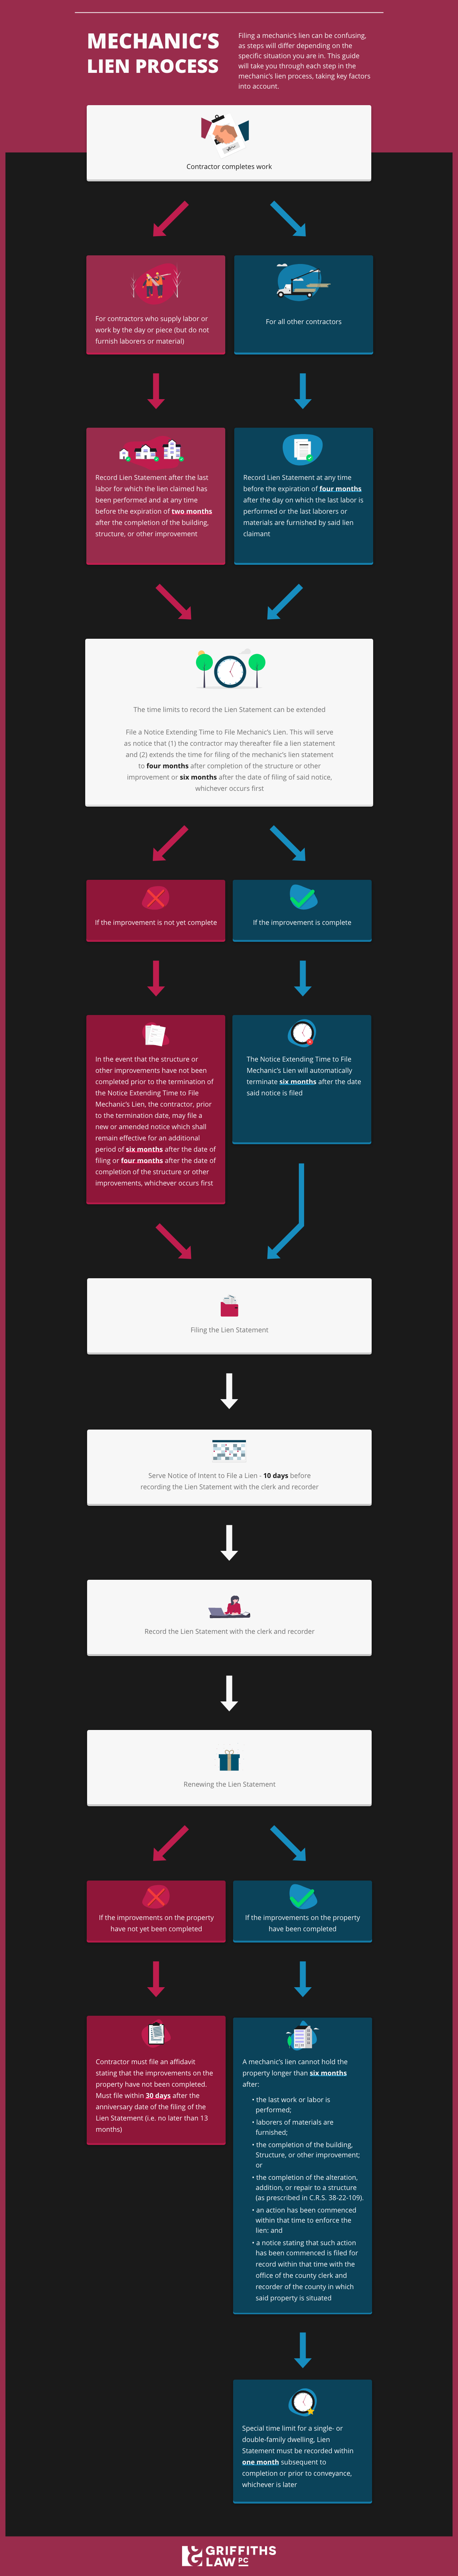 Infographic visual guide to filing a mechanic's lien in Colorado